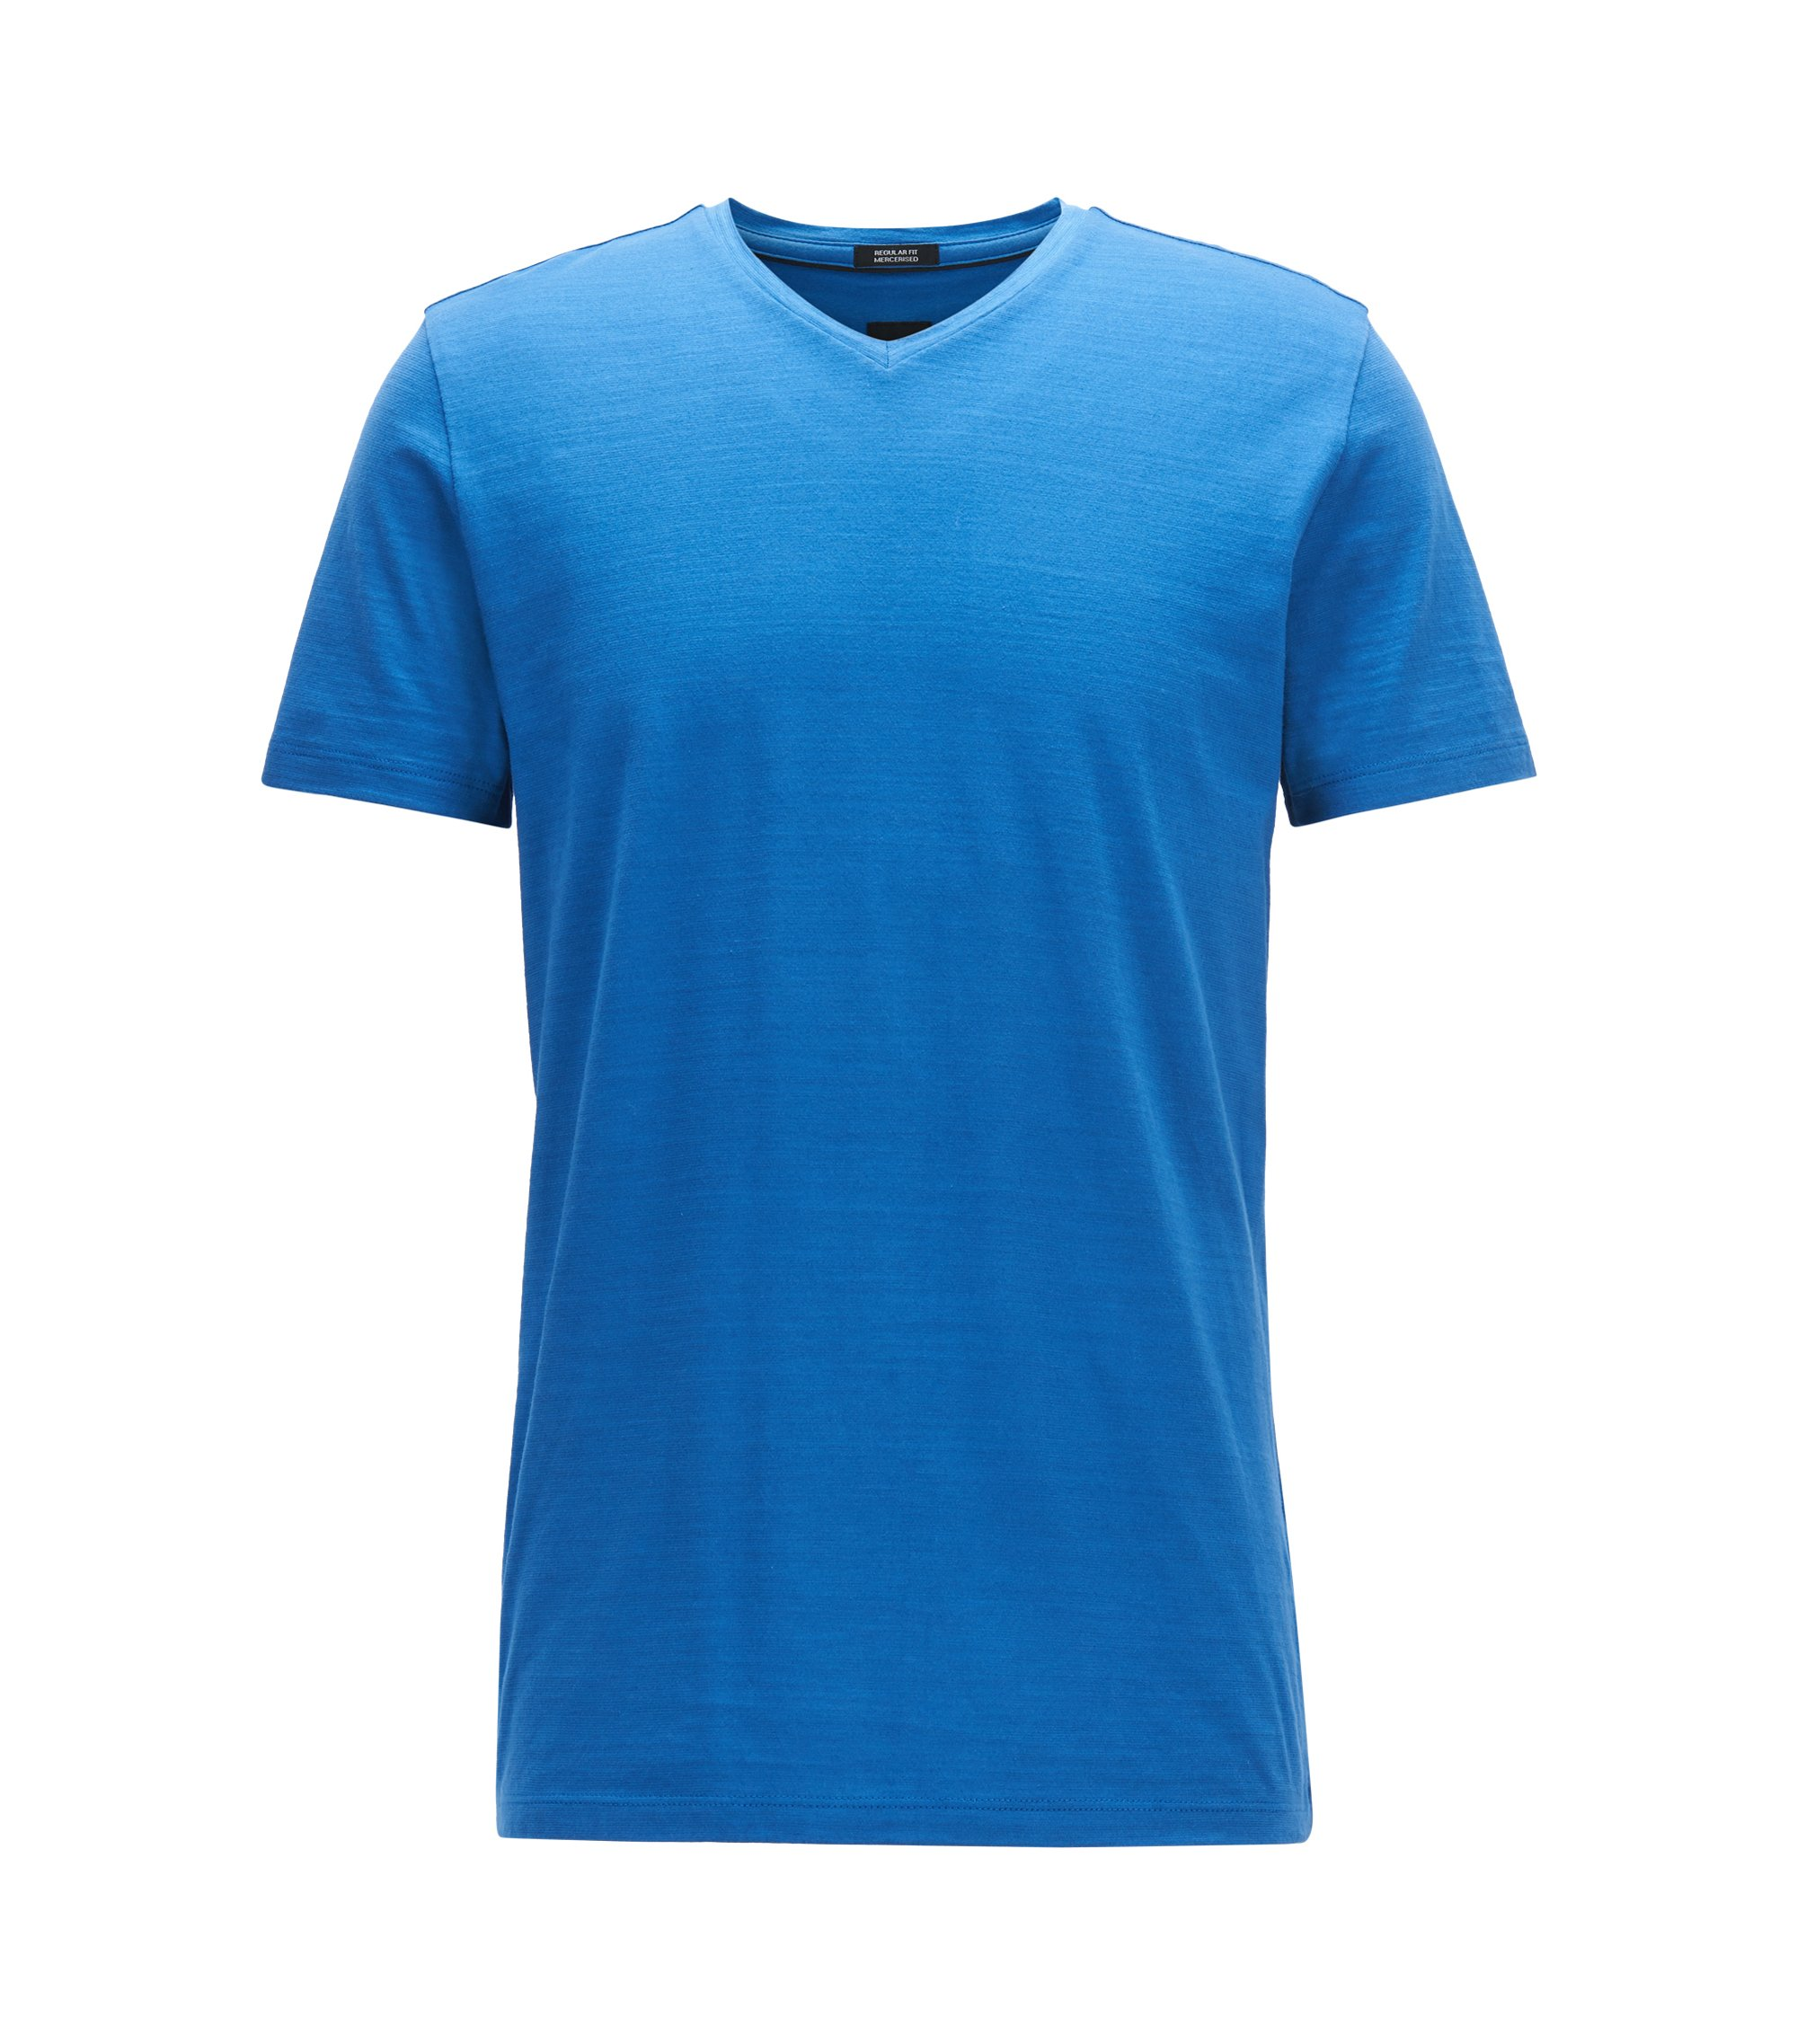 Regular-fit T-shirt in mercerized cotton, Blue